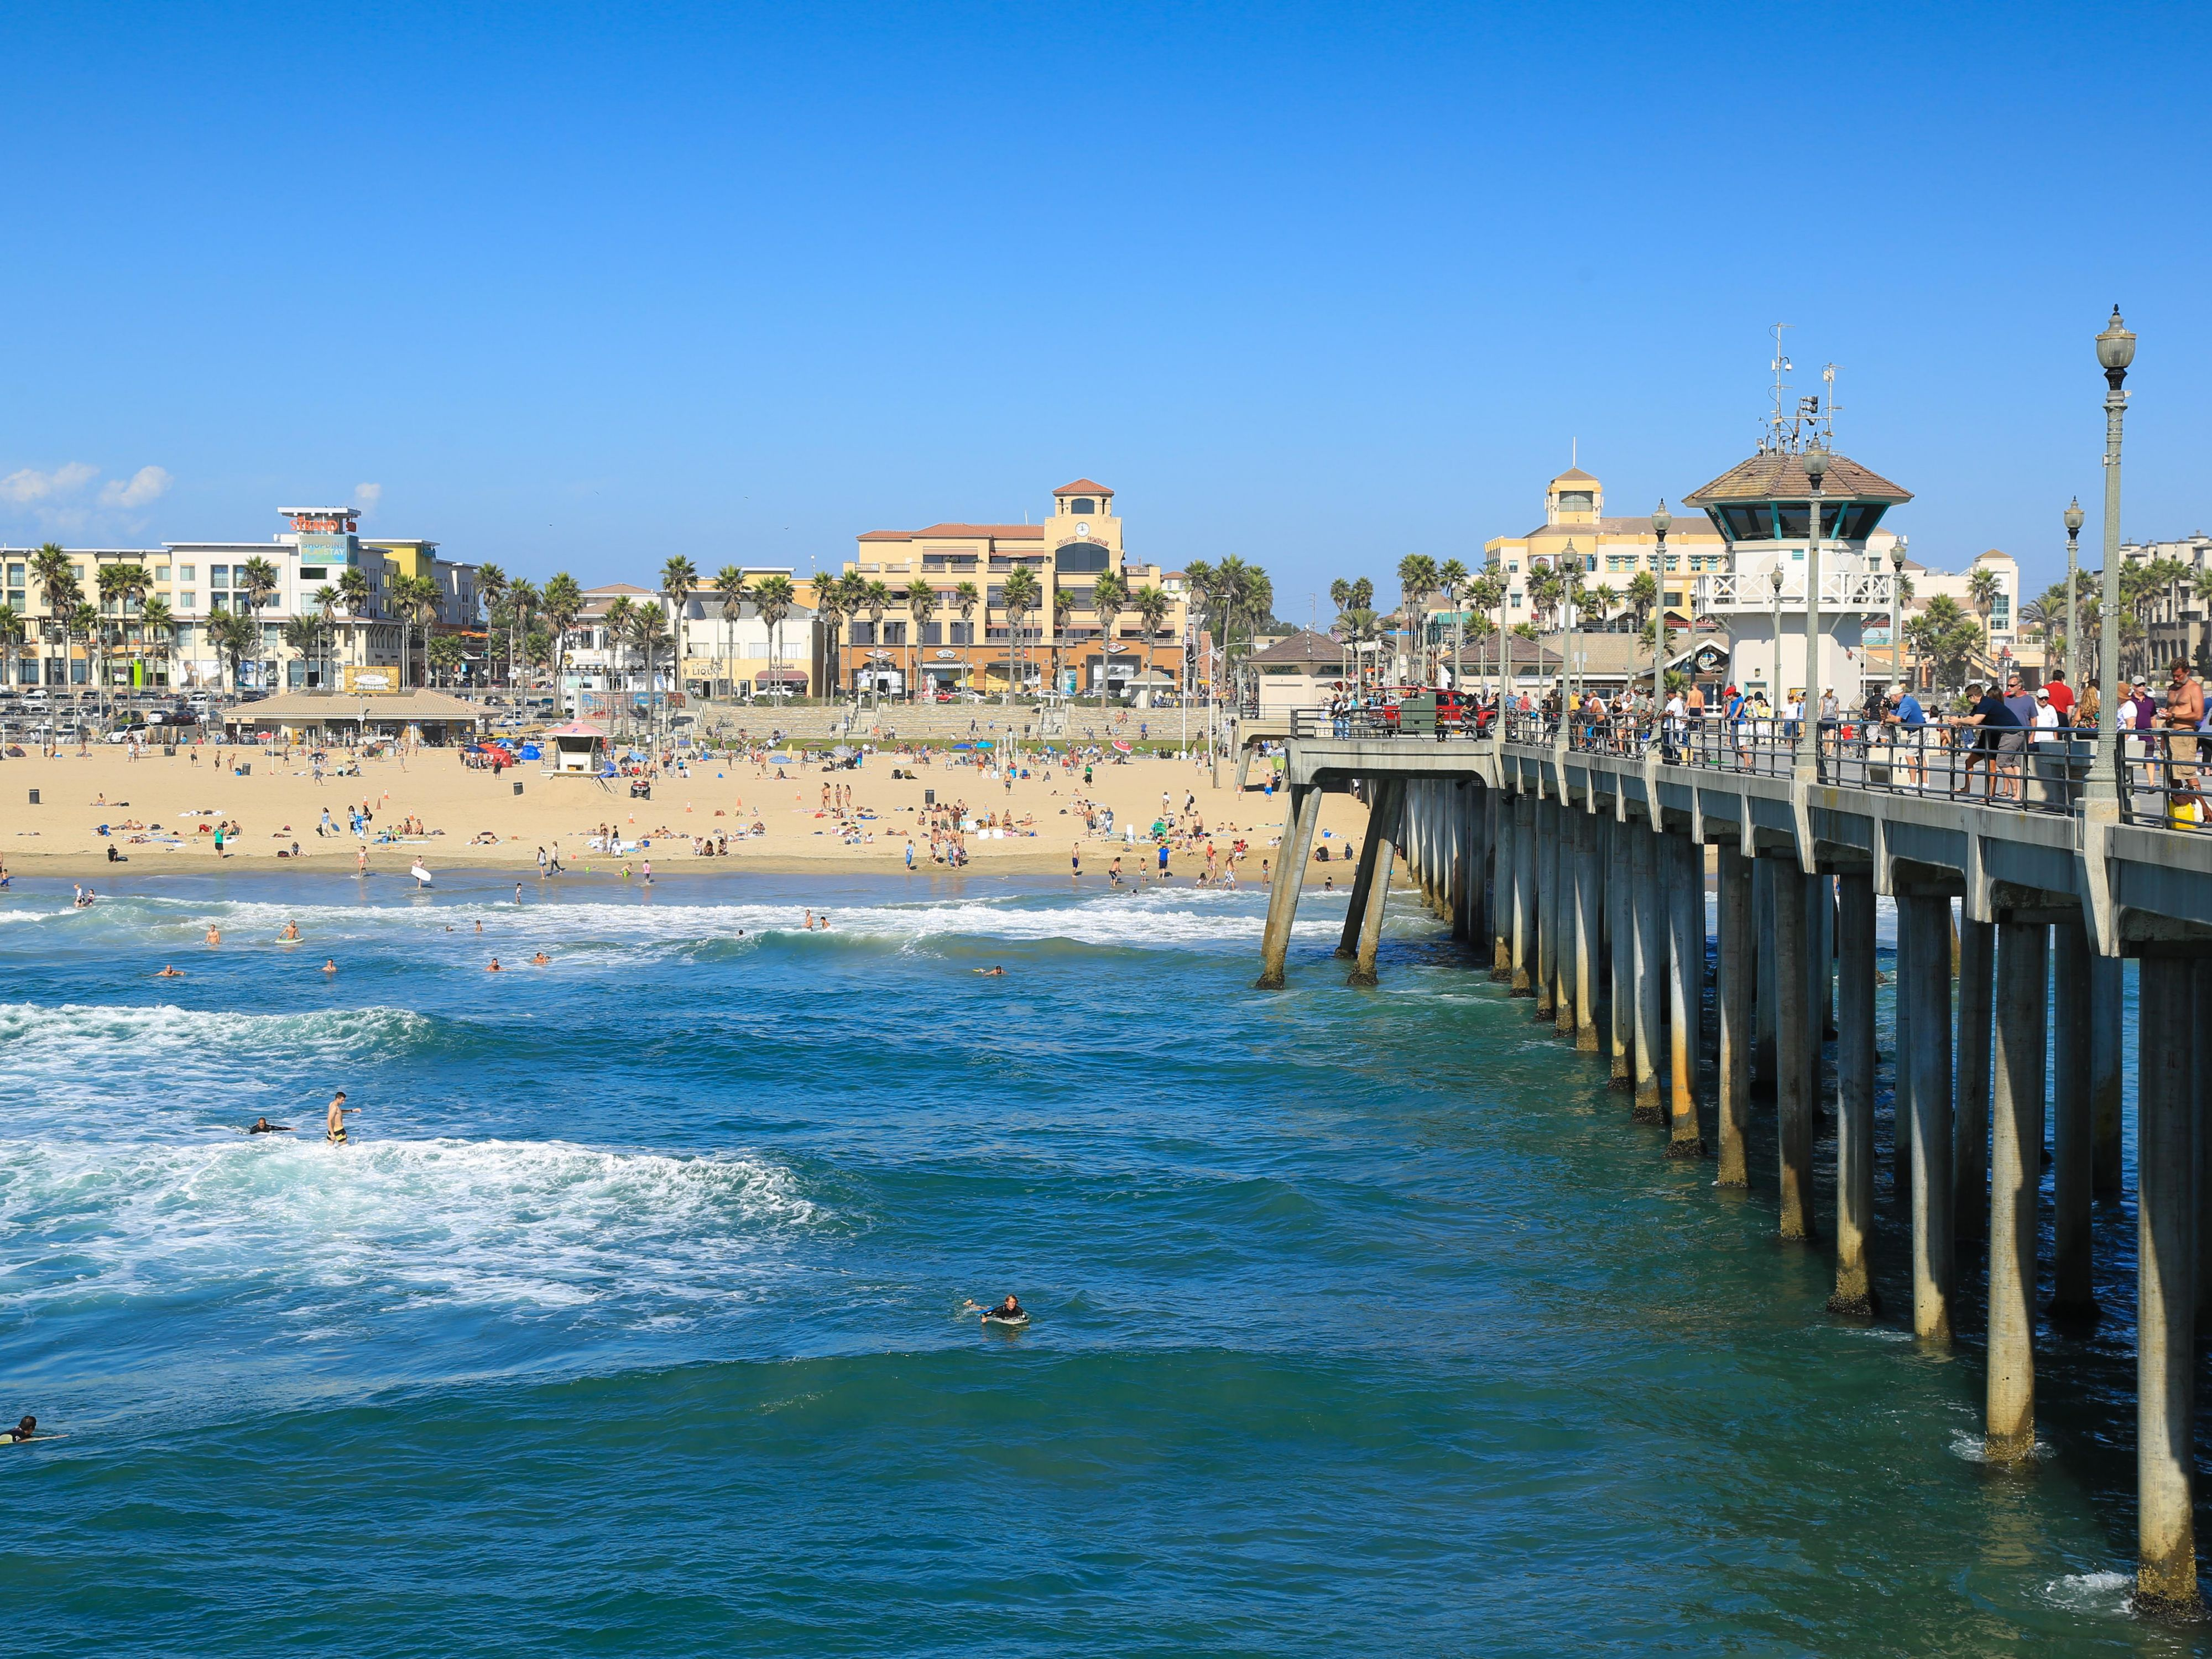 Our Santa Ana hotel is just a short drive to Huntington Beach pier